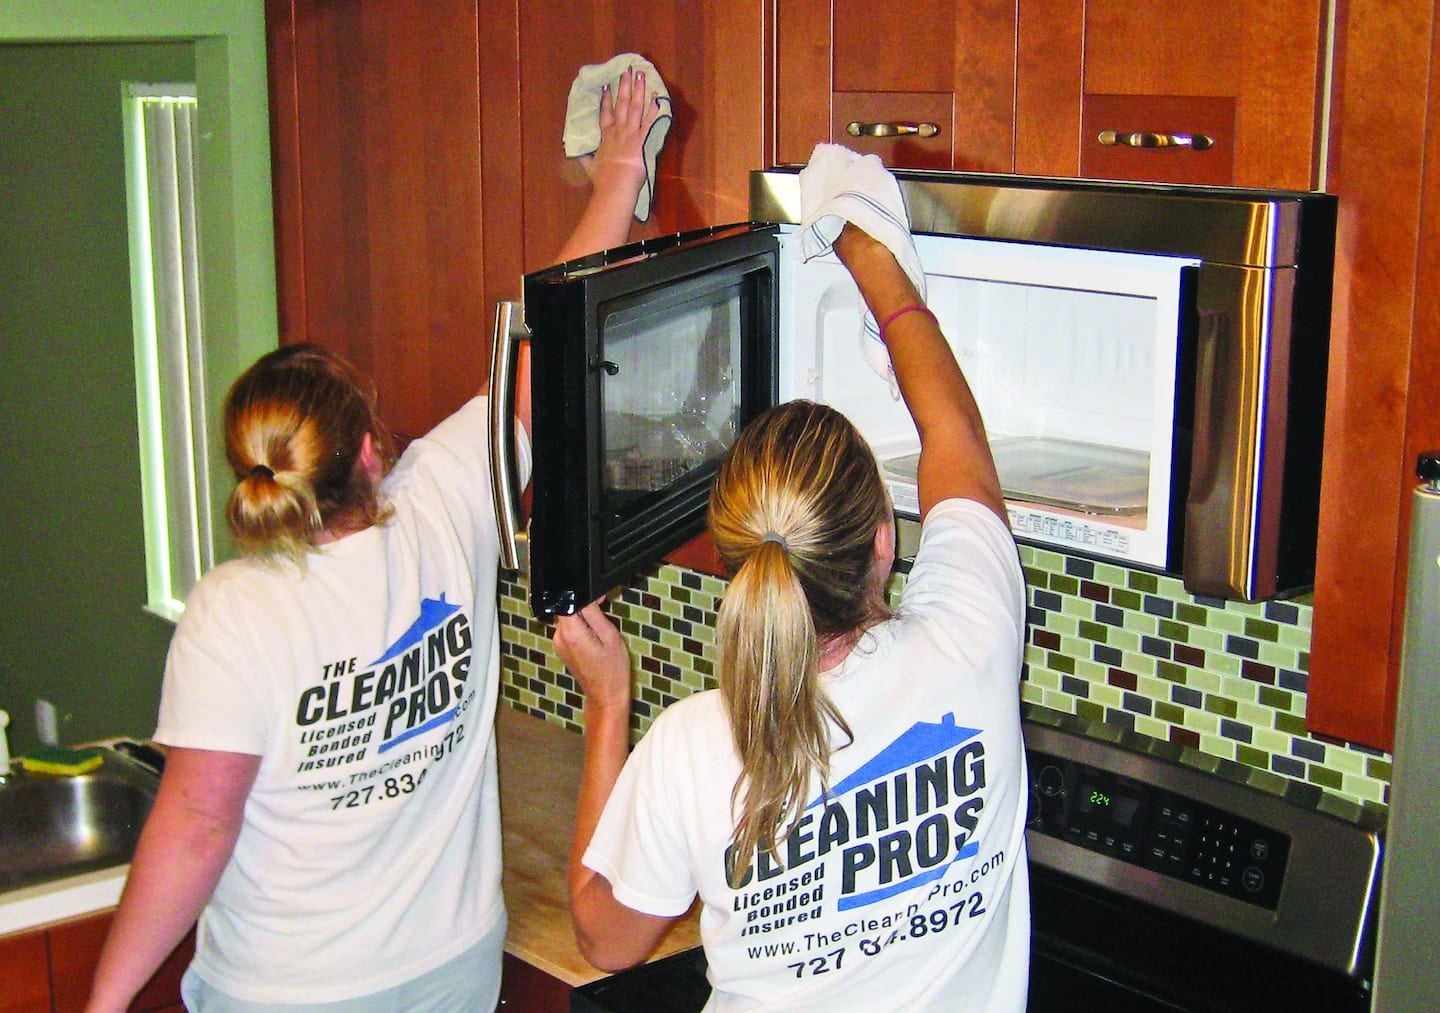 Employees of The Cleaning Pros leave a sheen and shine on a client's home in New Port Richey, Fla. | Photo courtesy of Chuck Terpstra